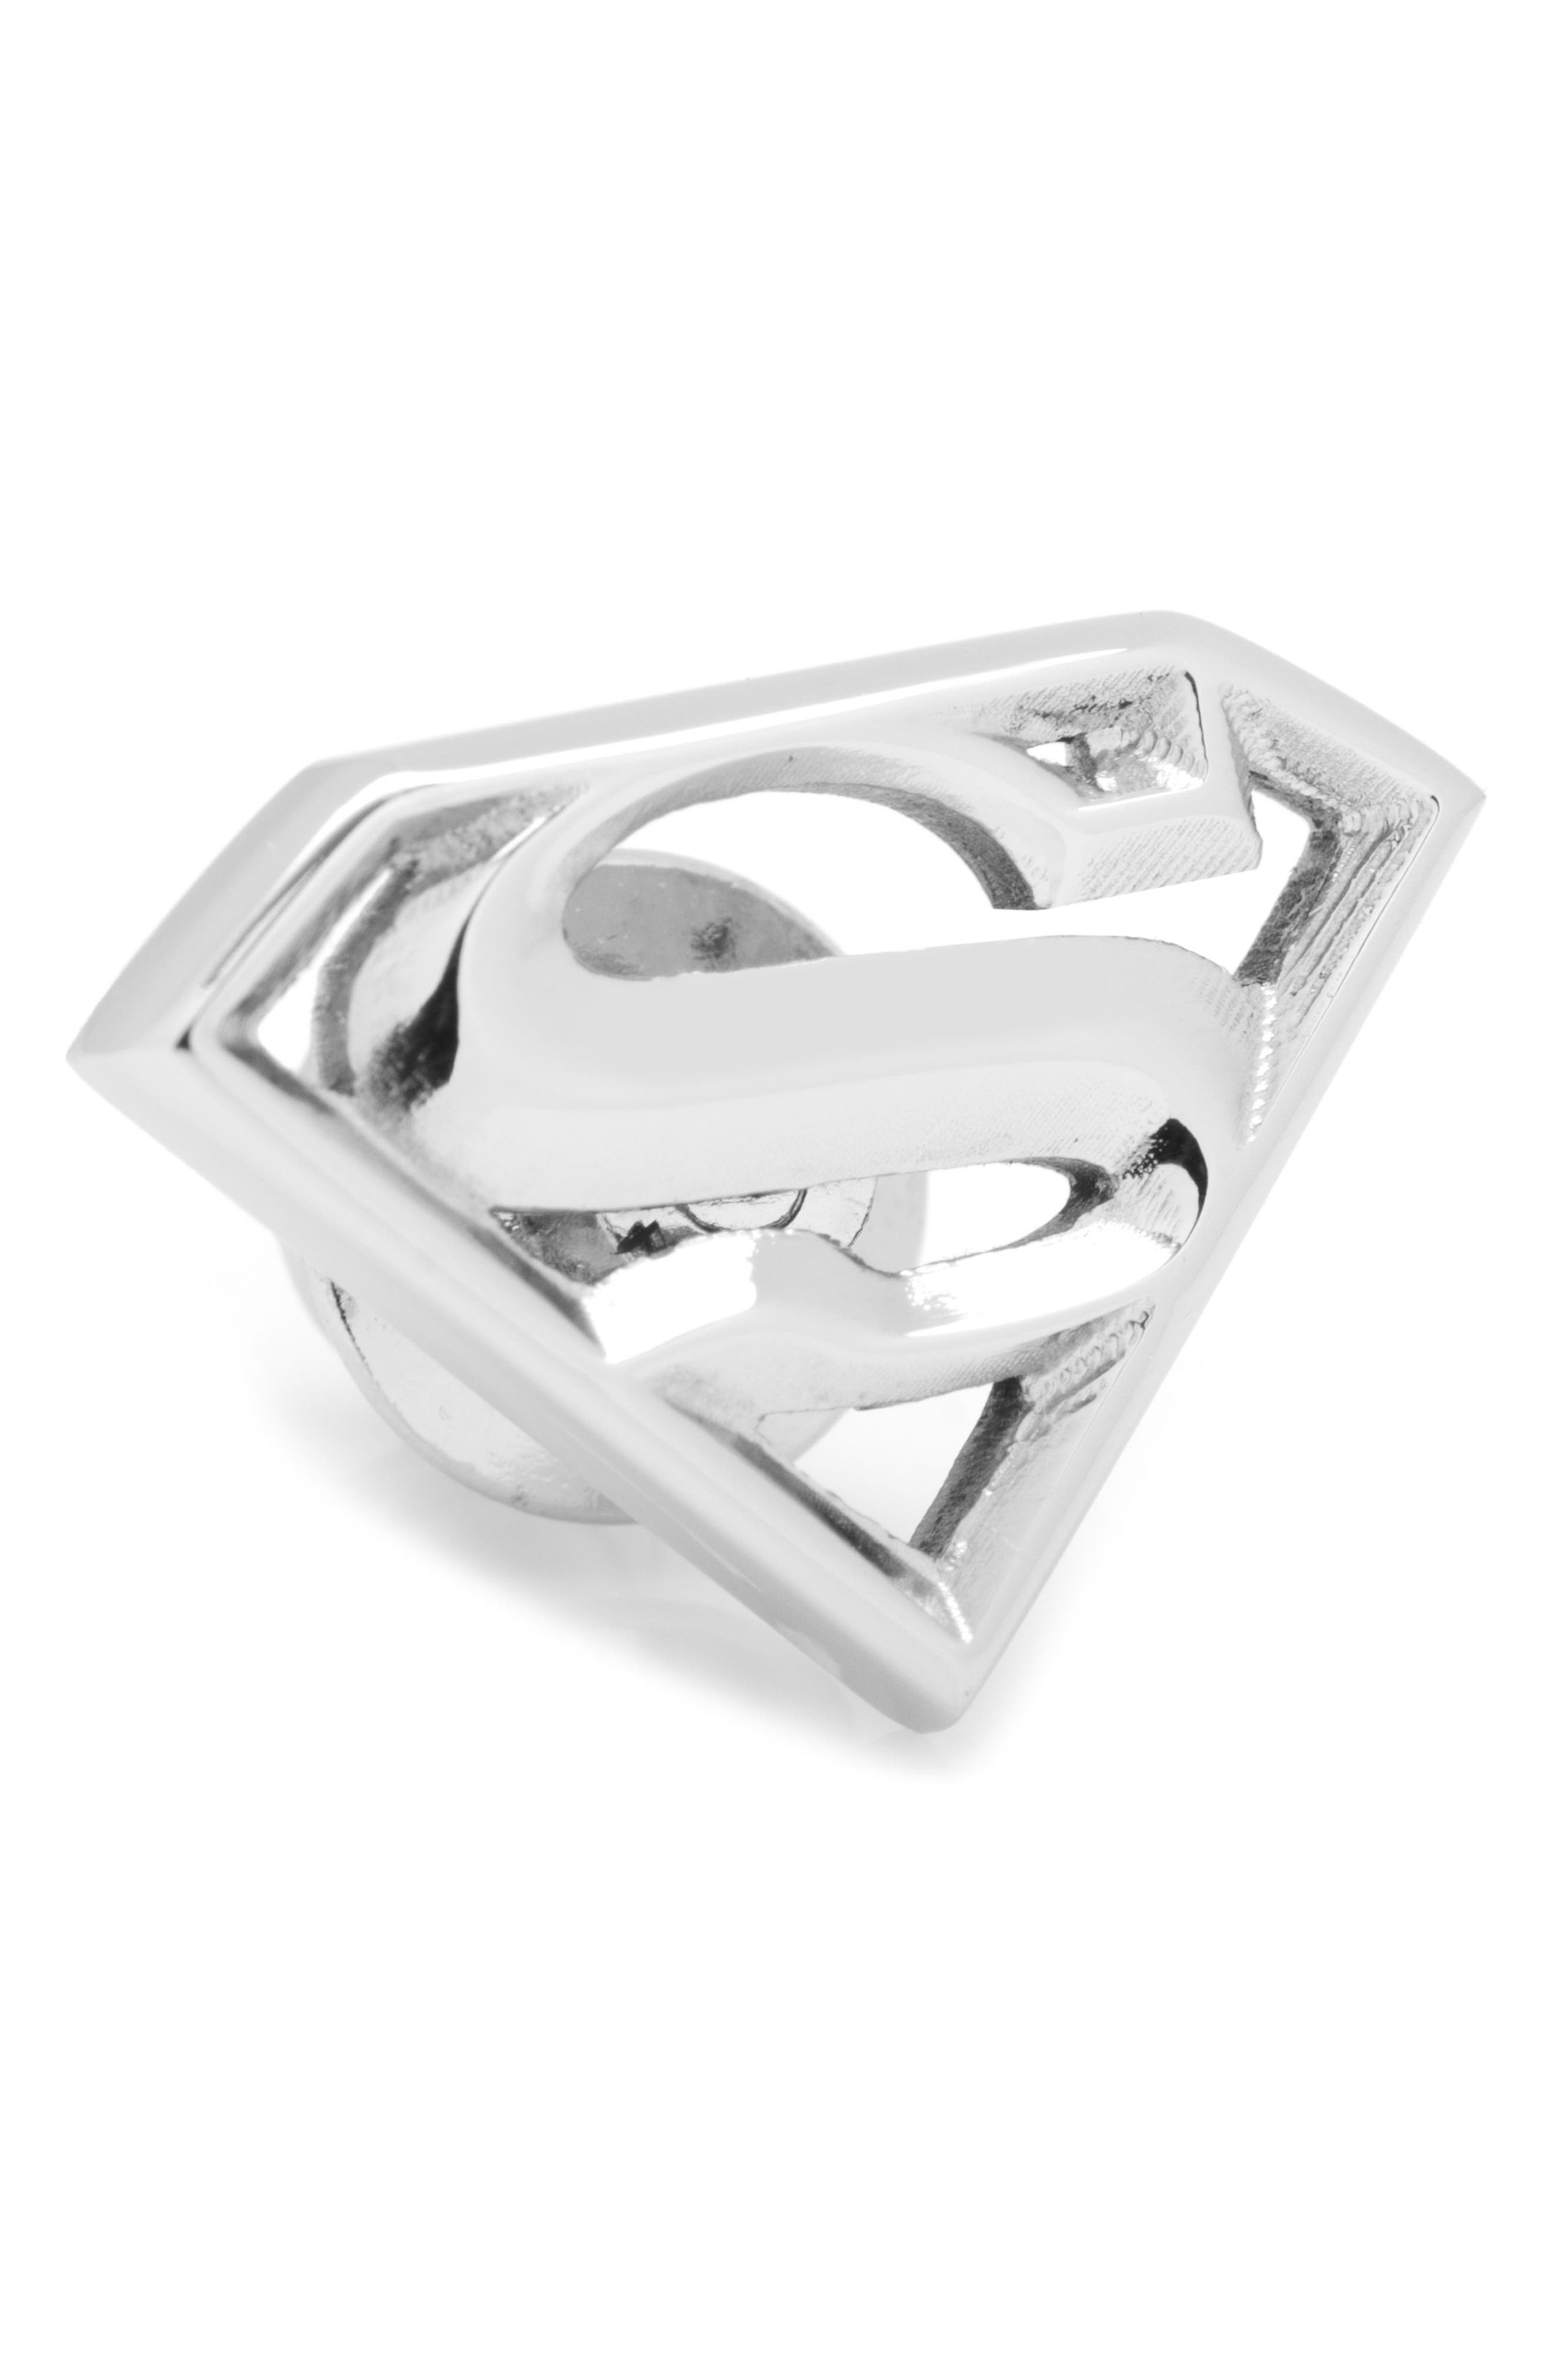 Superman Lapel Pin,                         Main,                         color, Silver